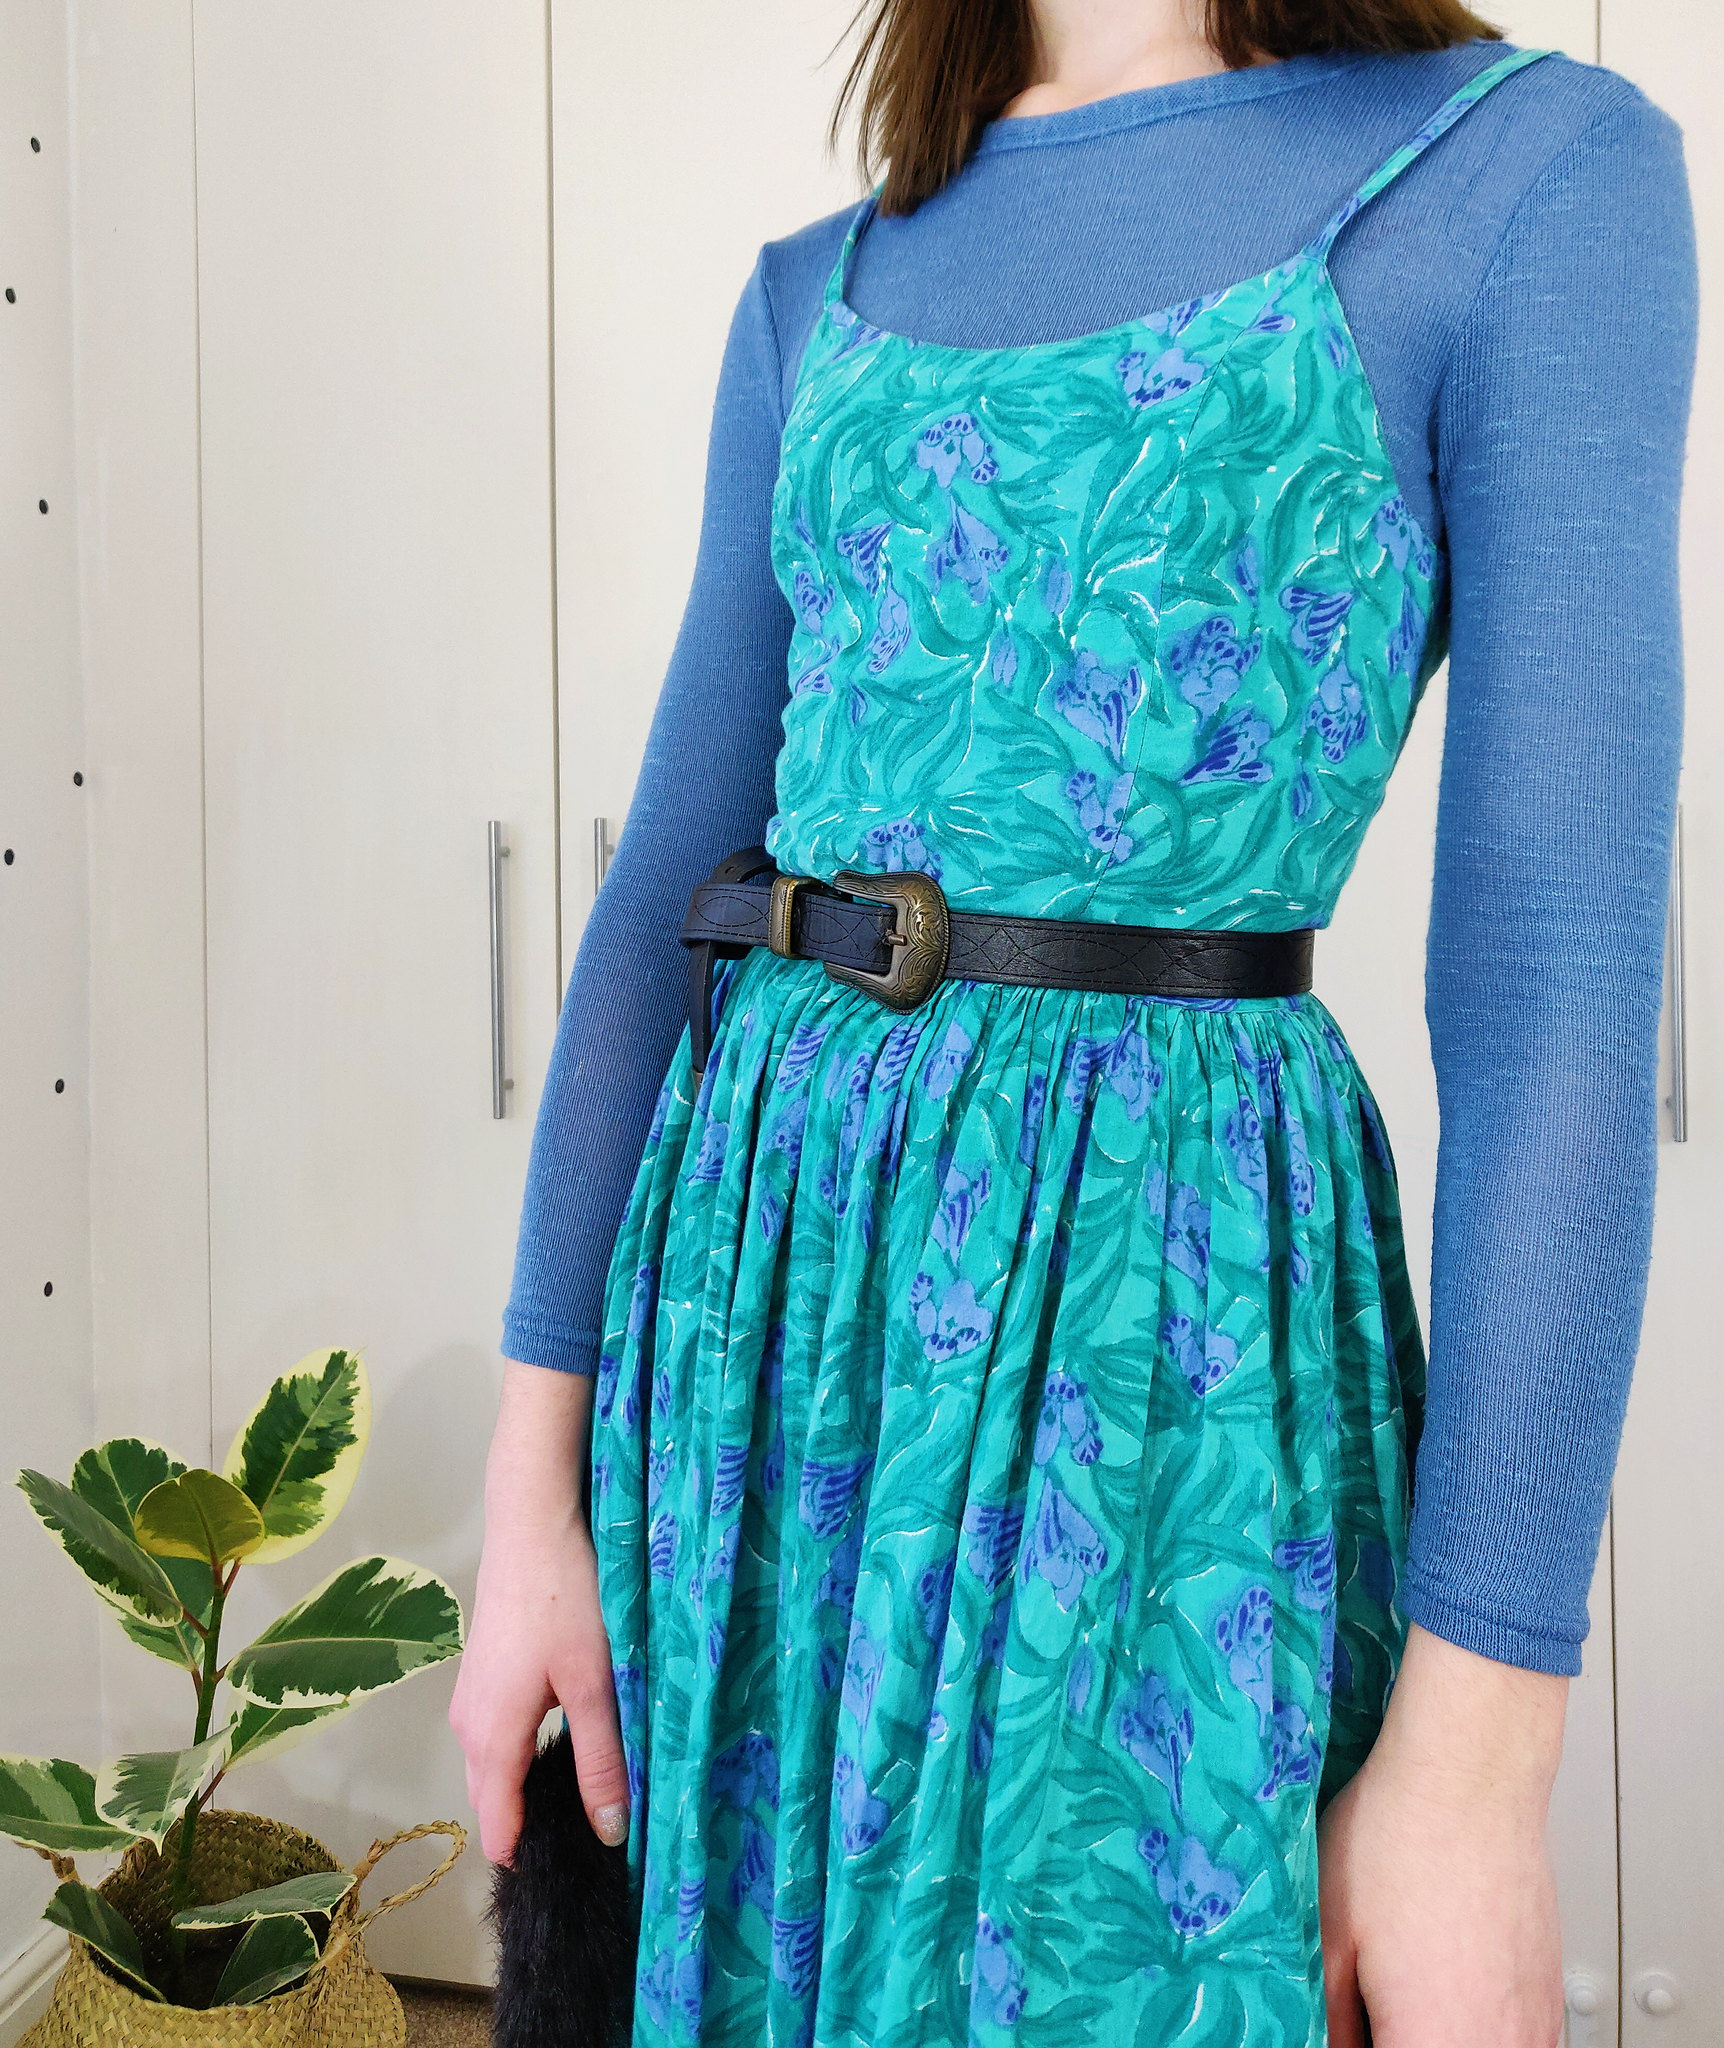 Layering a summer dress with a knit